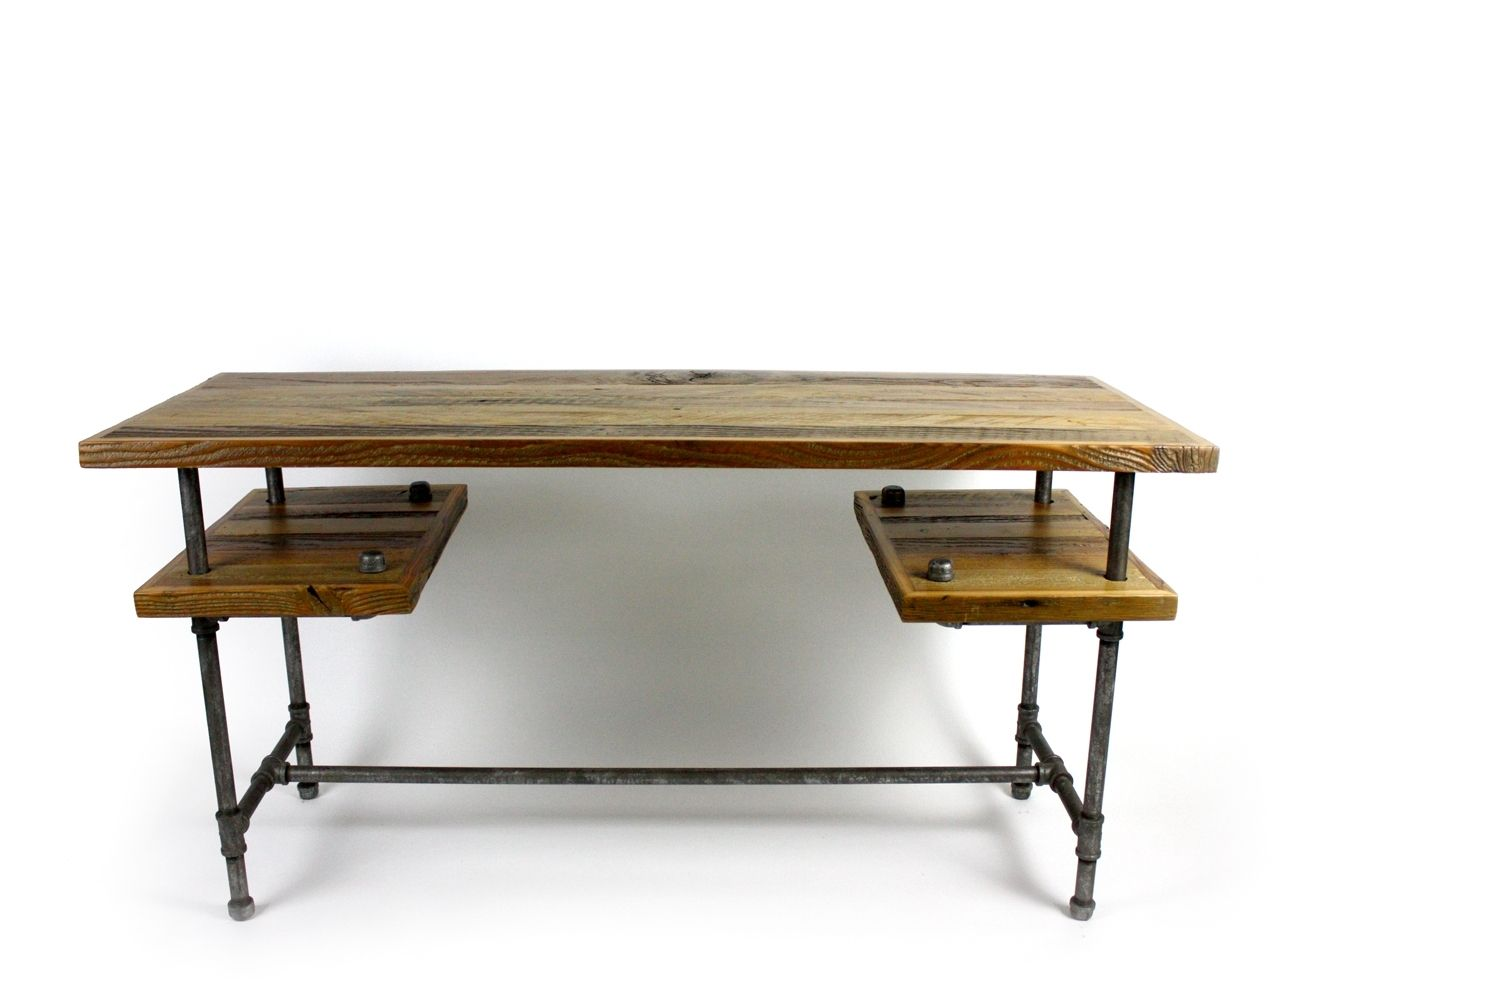 Custom Made Galvy Desk Reclaimed Wood Table